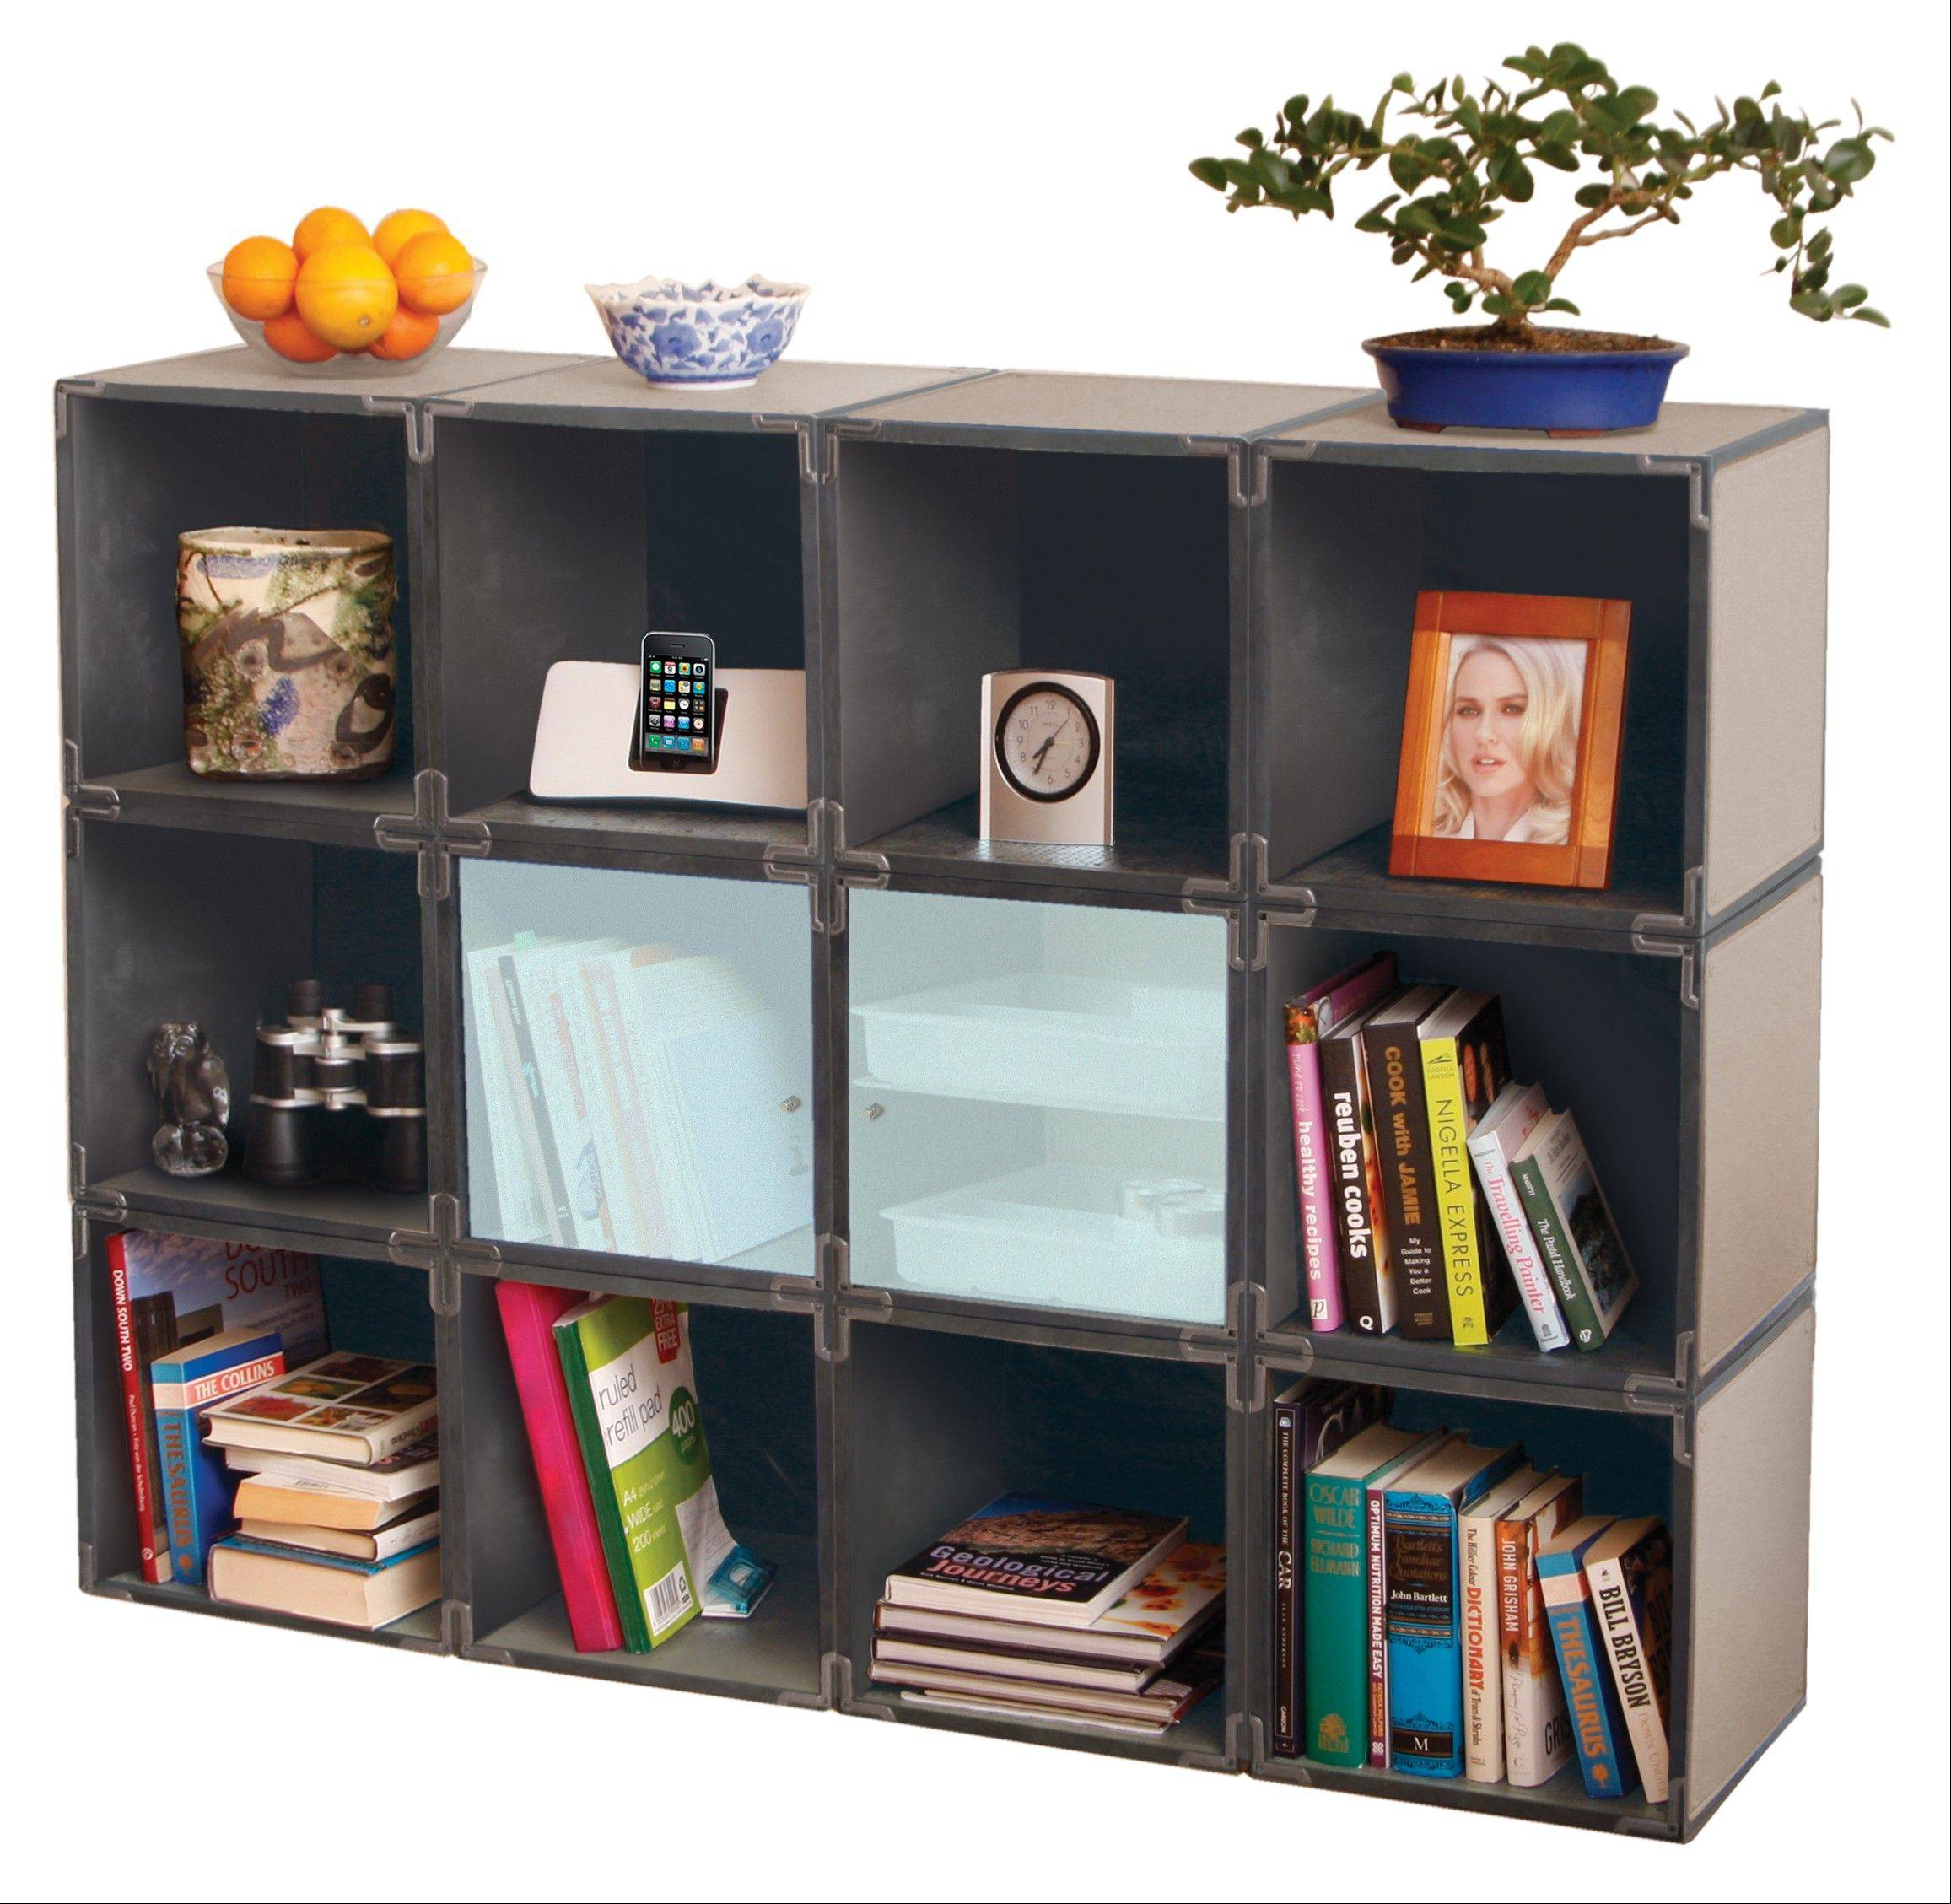 Yube Cubes start at $29.50 each and all kinds of personalization is available. This wall unit is $354.